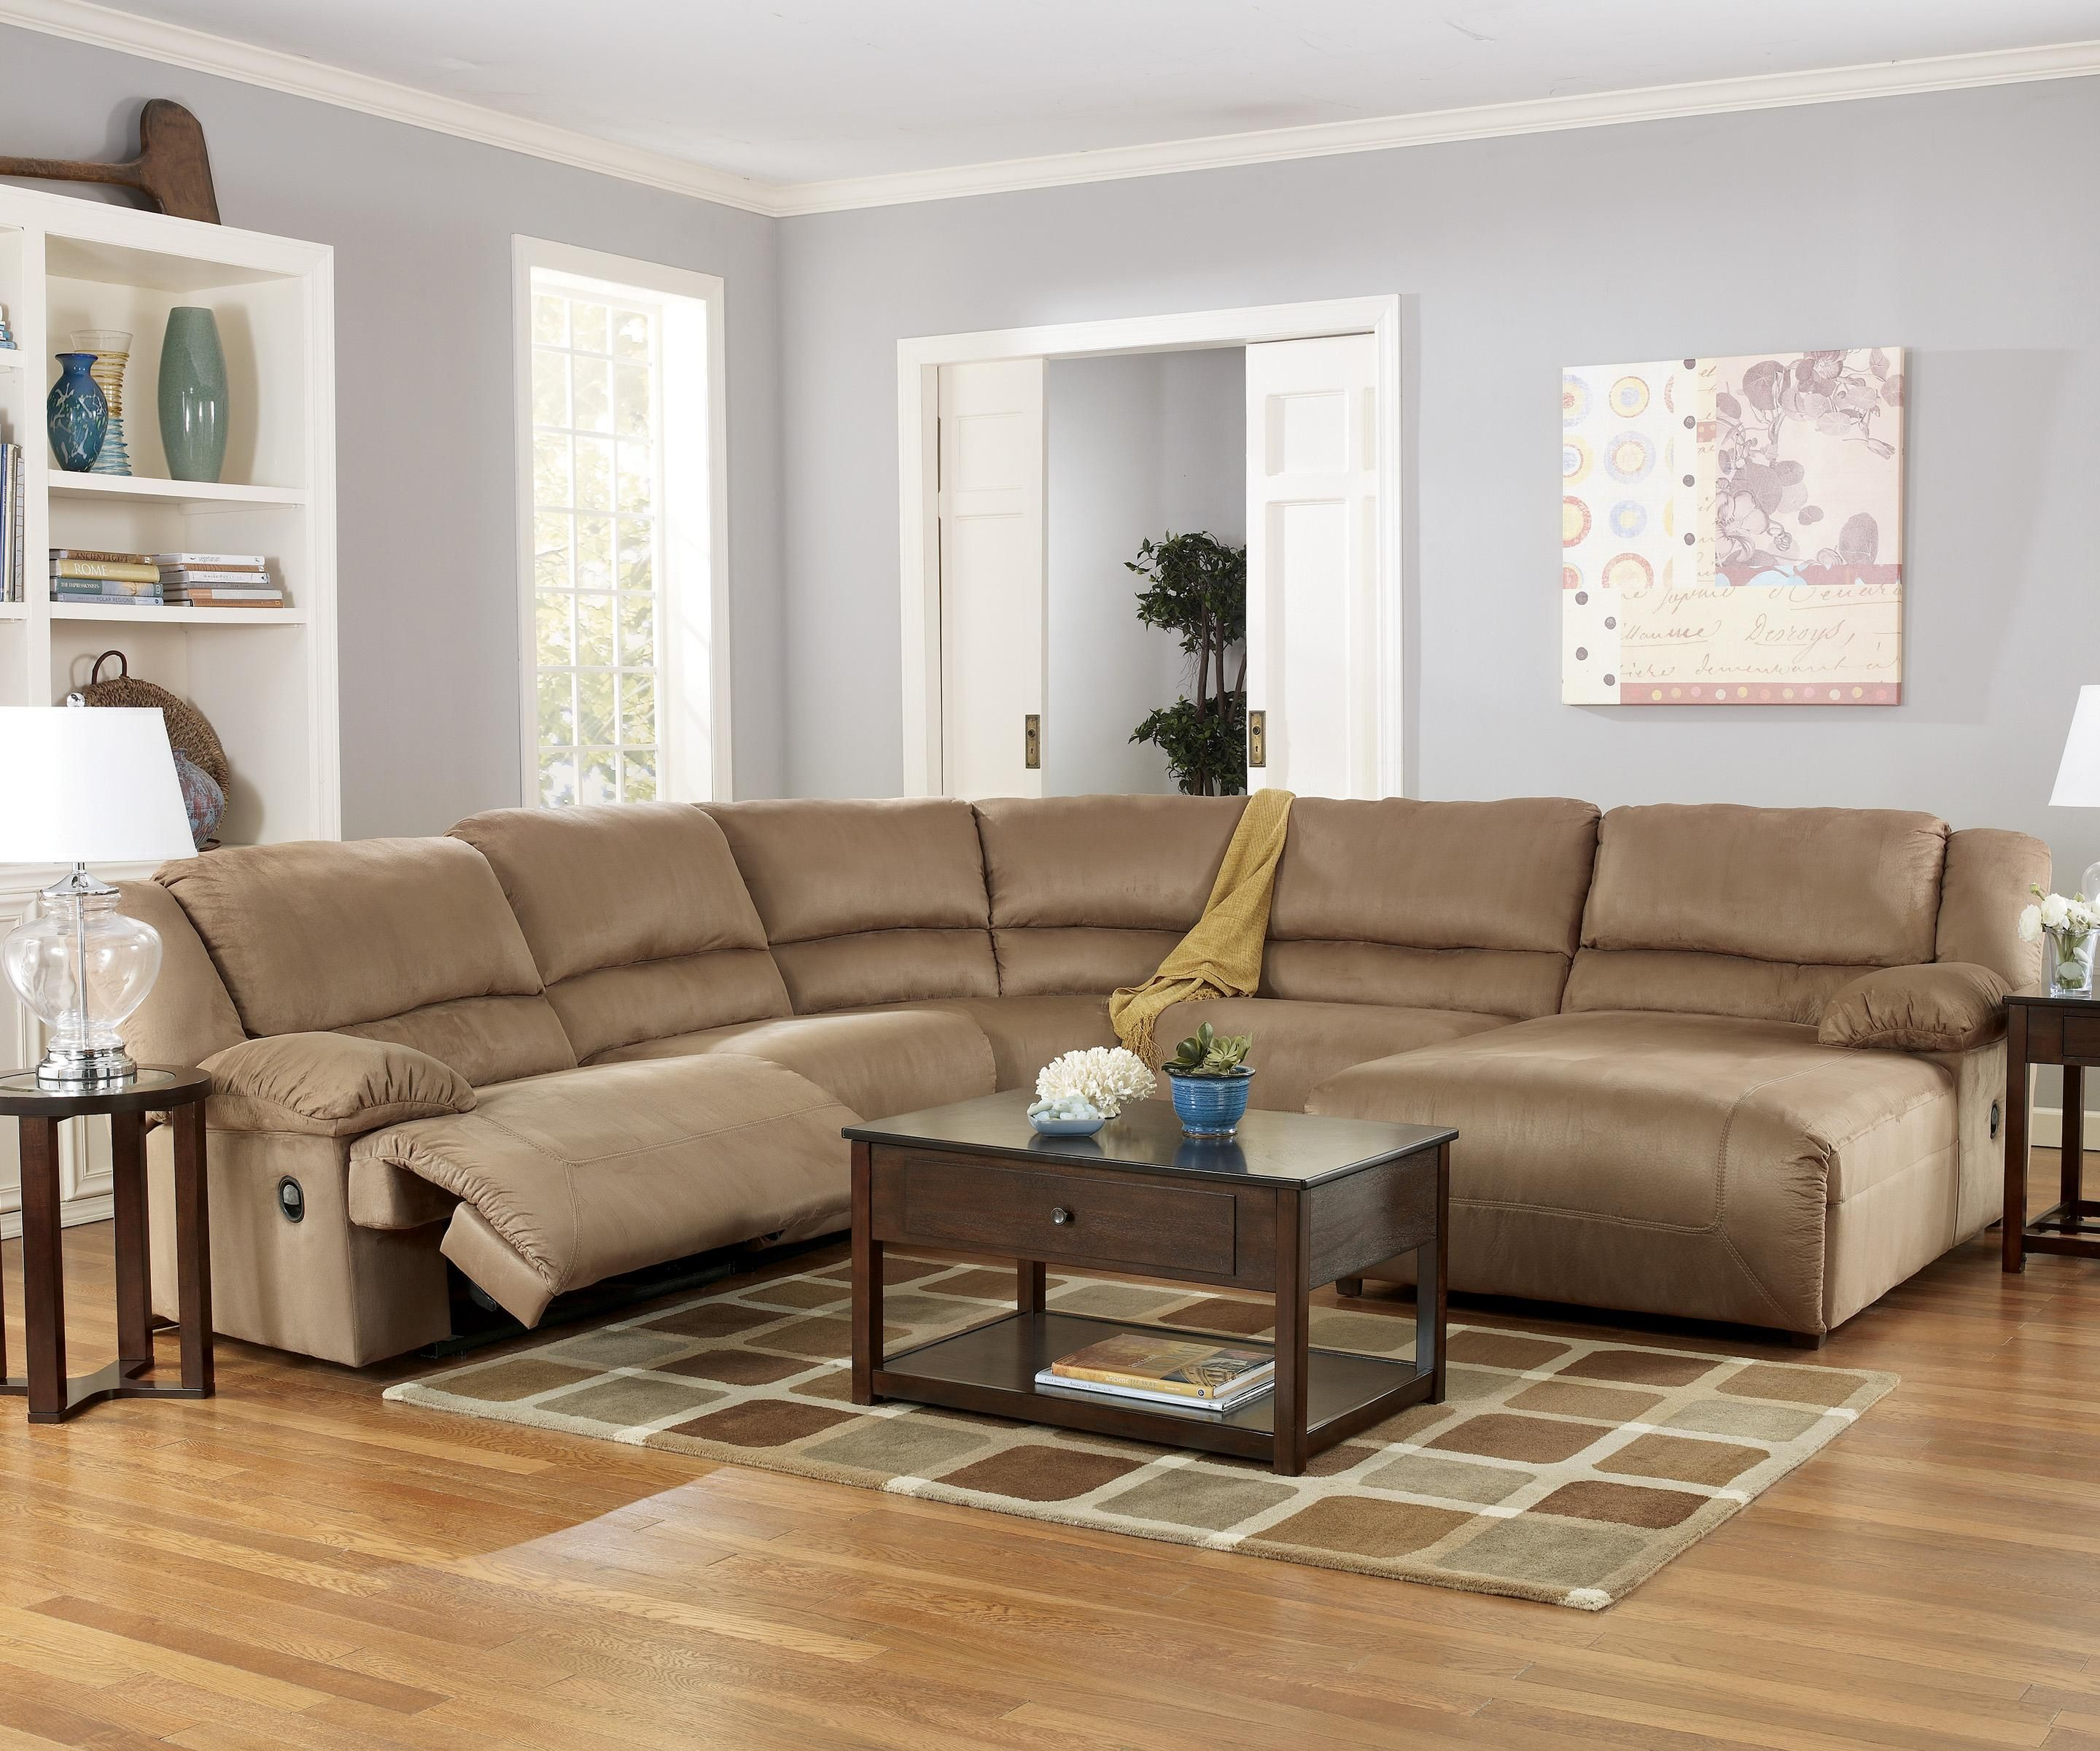 Hogan   Mocha 5 Piece Motion Sectional With Chaise By Signature Design By  Ashley Furniture